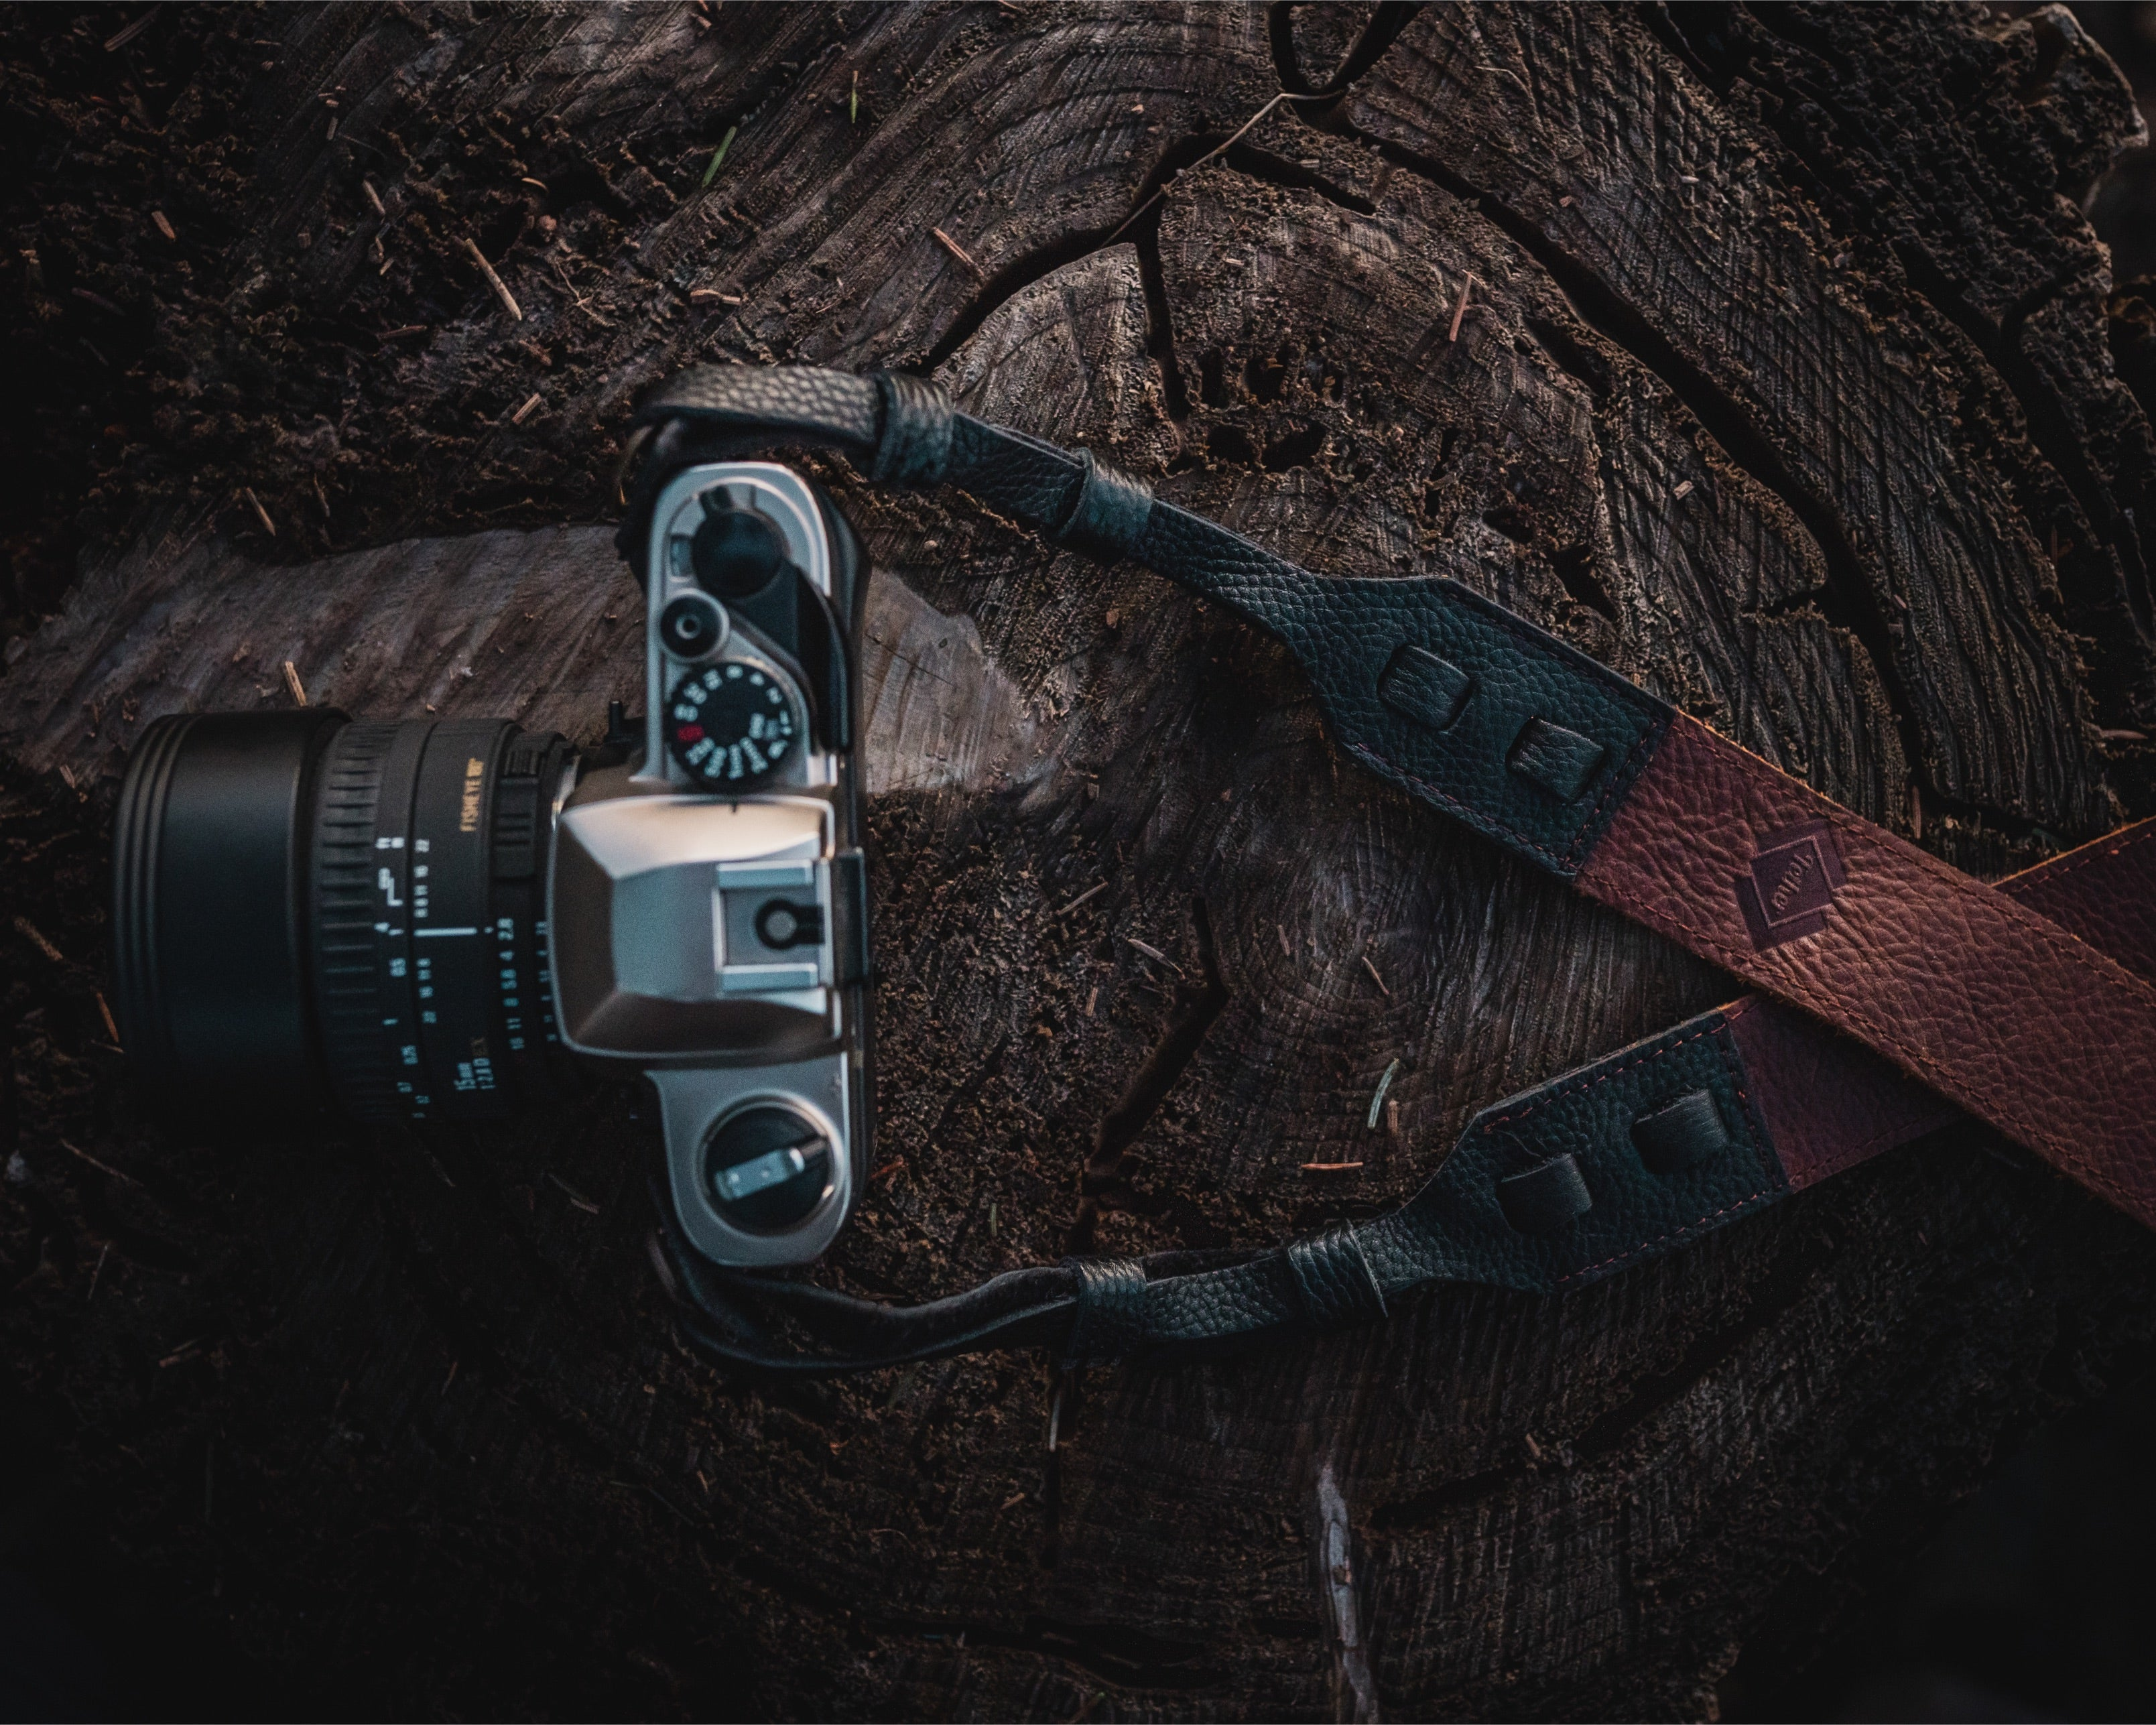 camera strap, camera wrist strap, sunglass straps, tents, gift guide, christmas presents, cool gifts for outdoorsy people